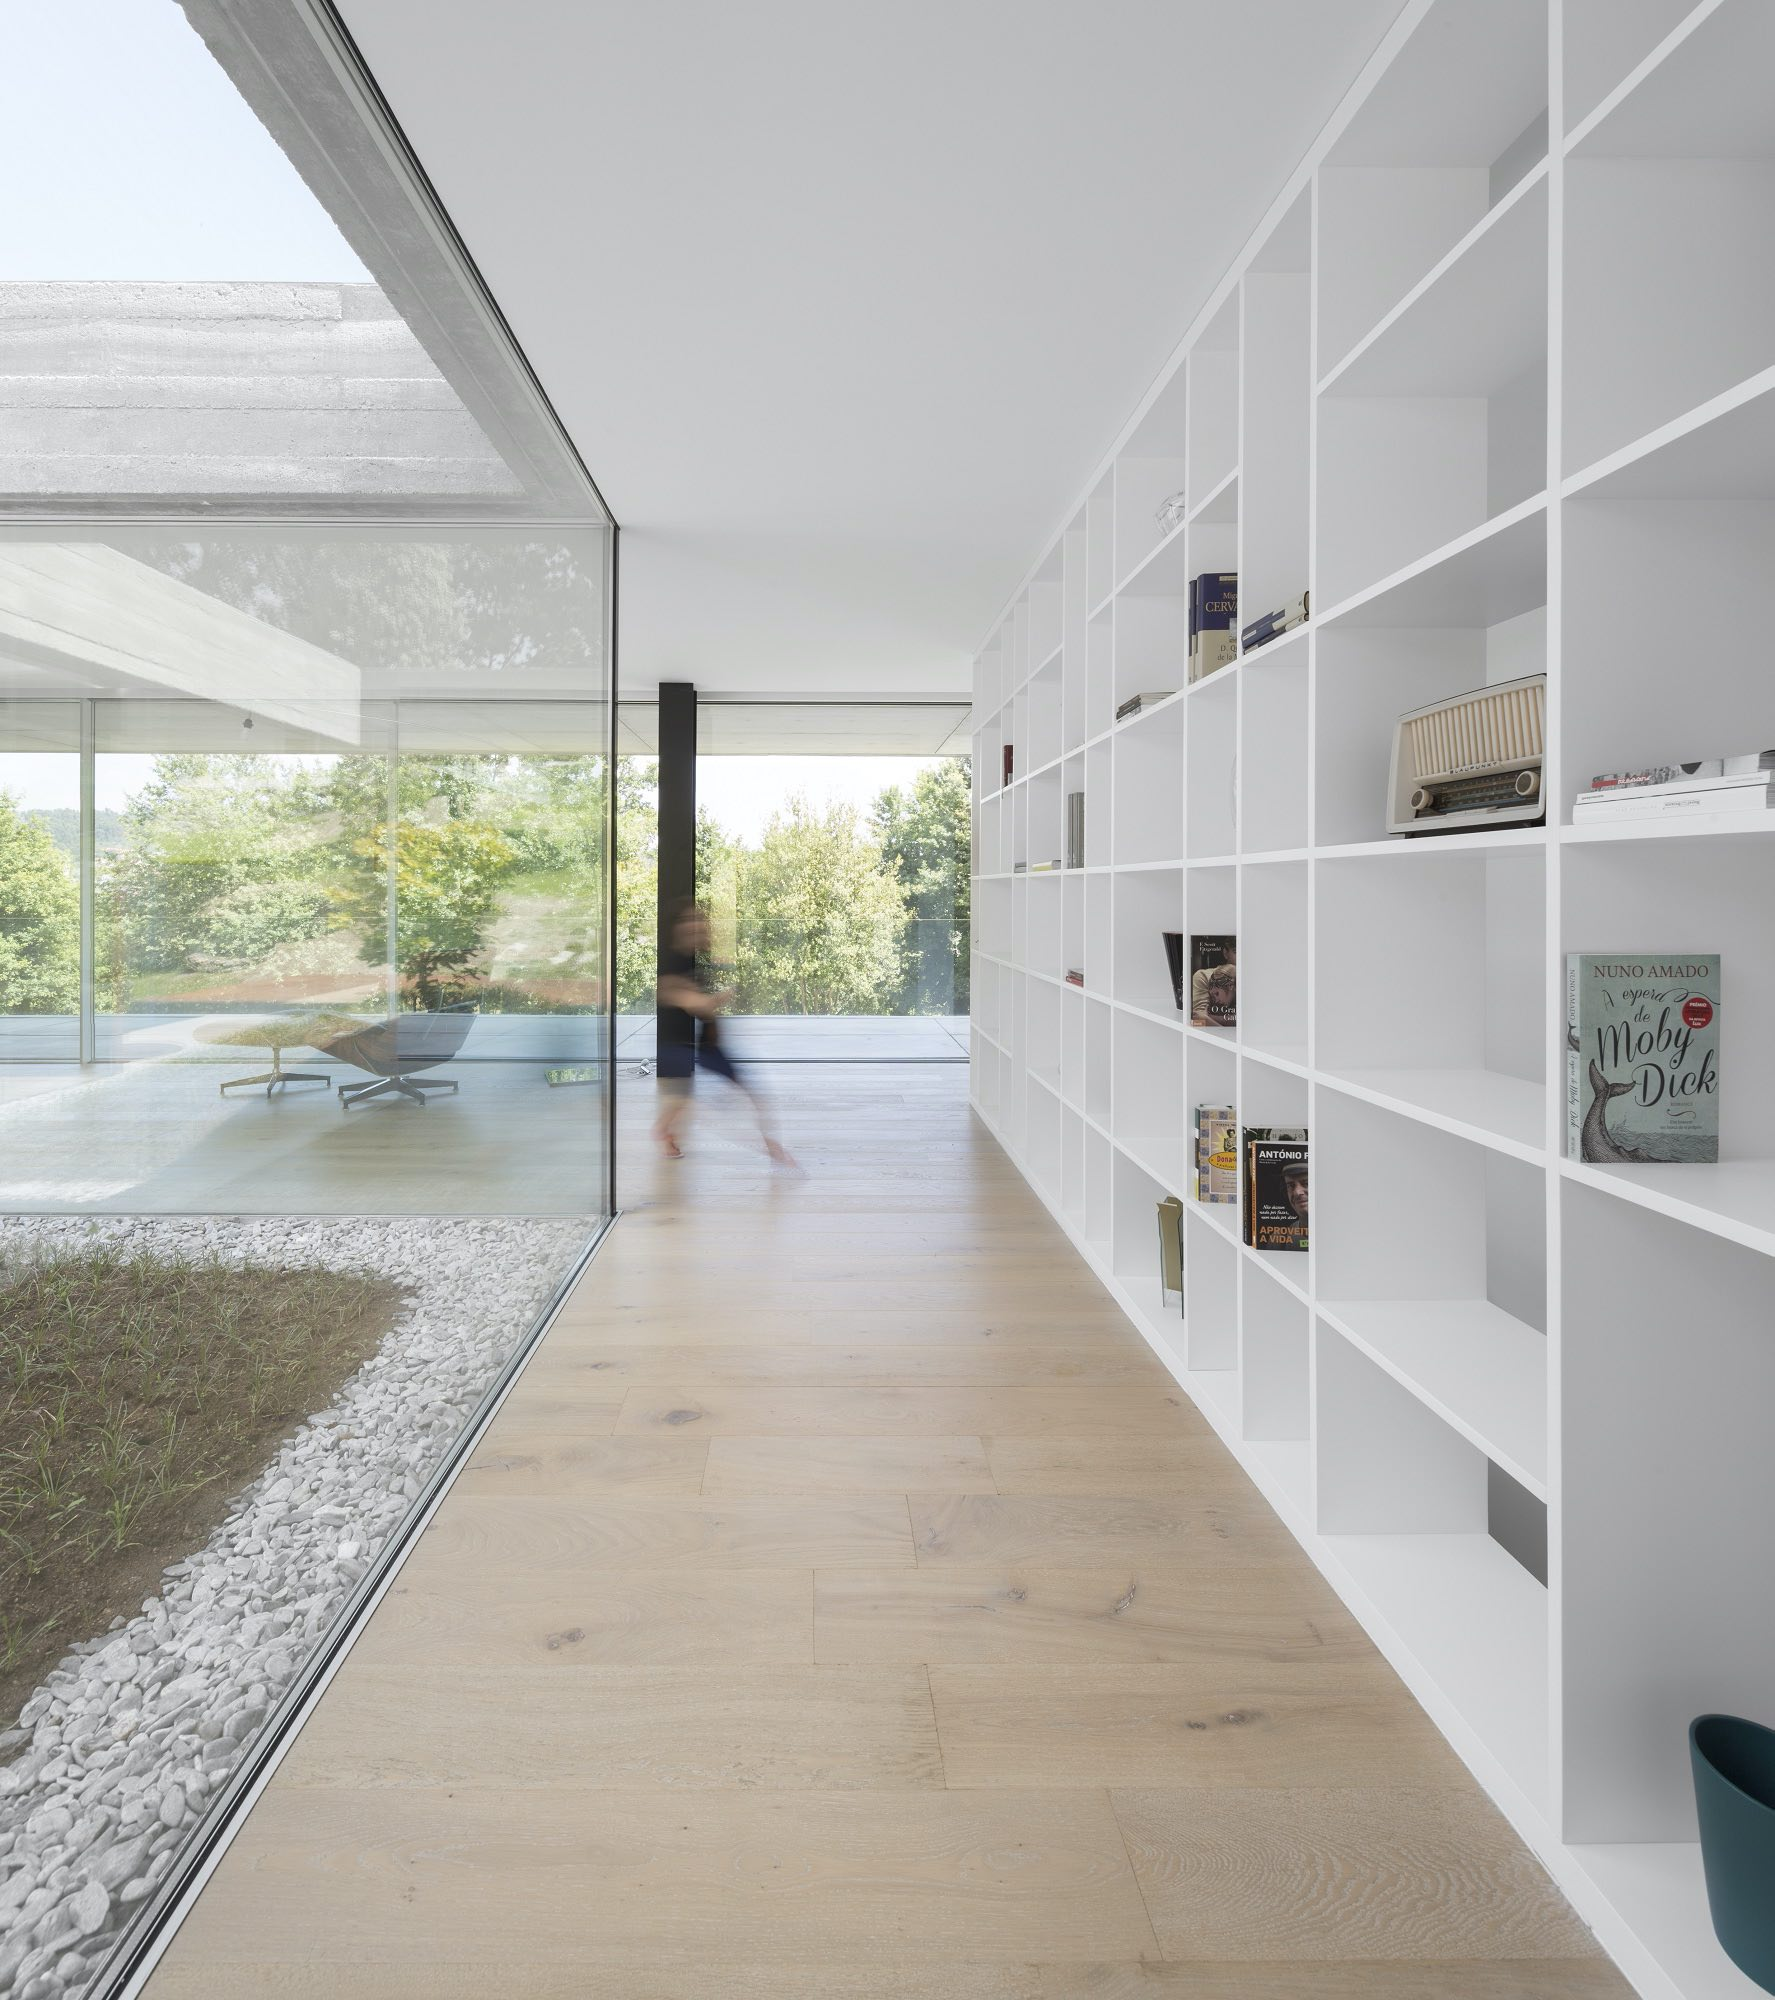 living room with large windows let the natural light enters the house